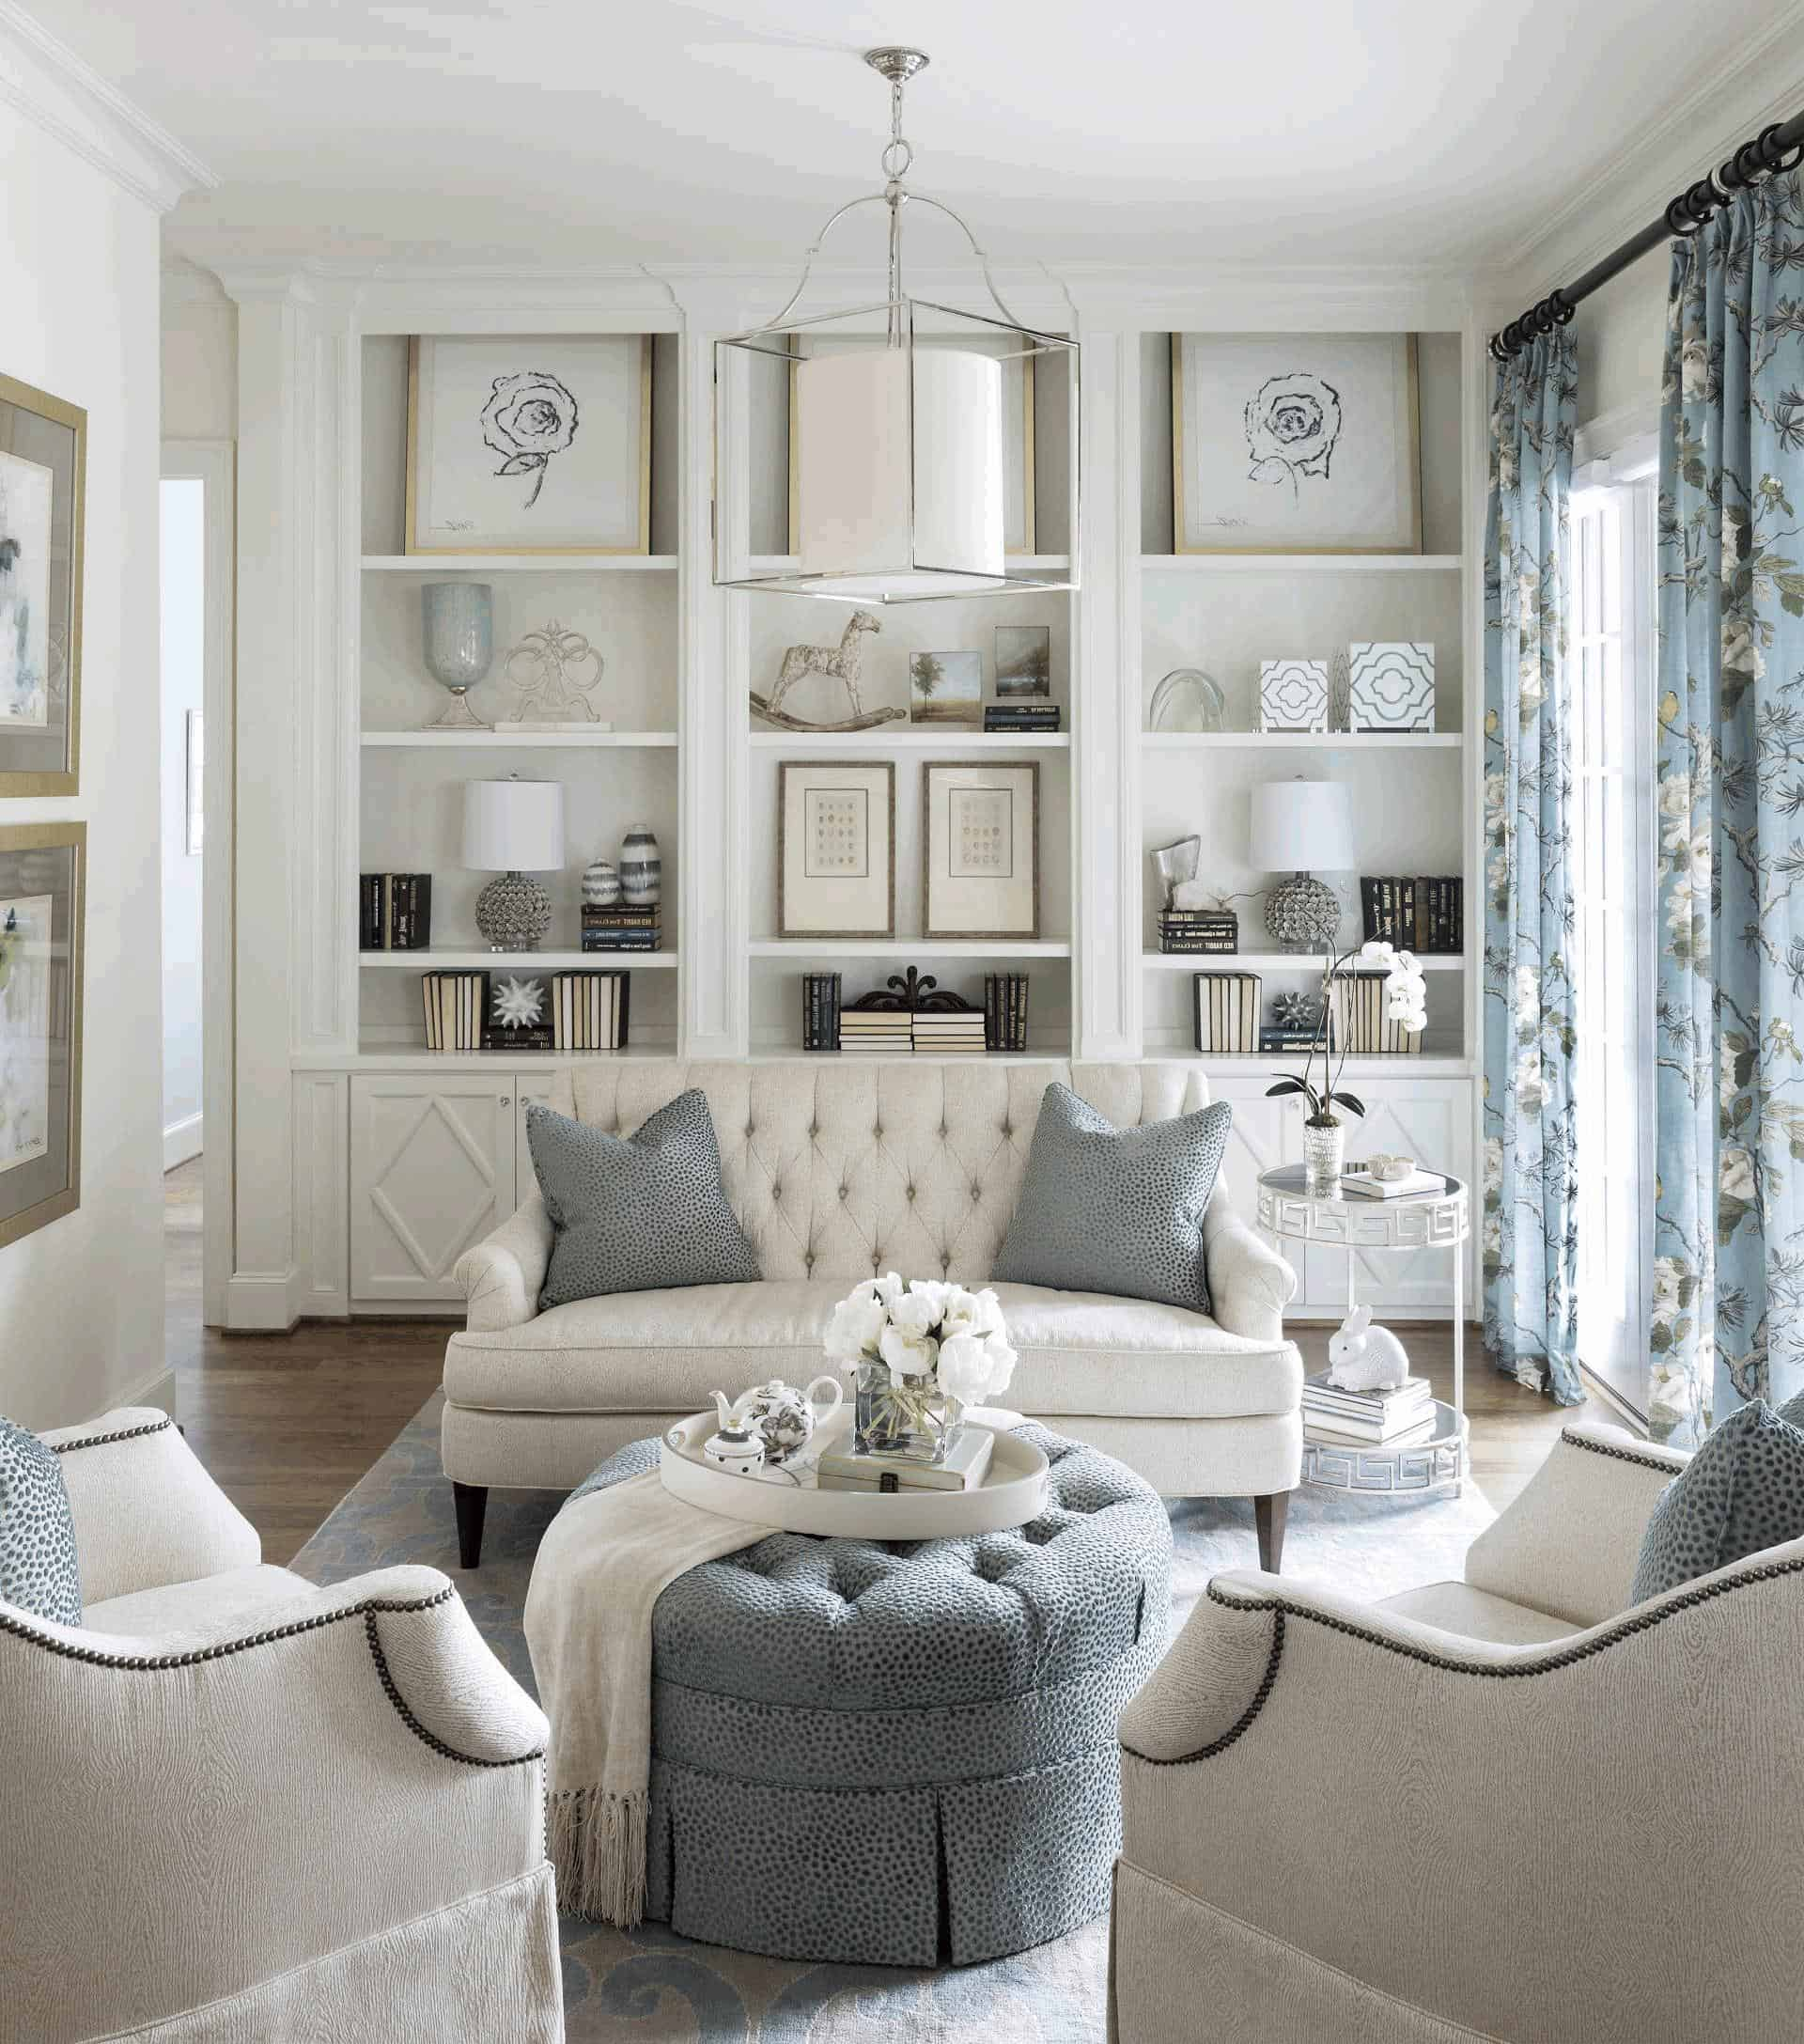 White Sofa Ideas For A Stylish Living Room View in gallery textured living room sofa White Sofa Ideas For A Stylish Living  Room